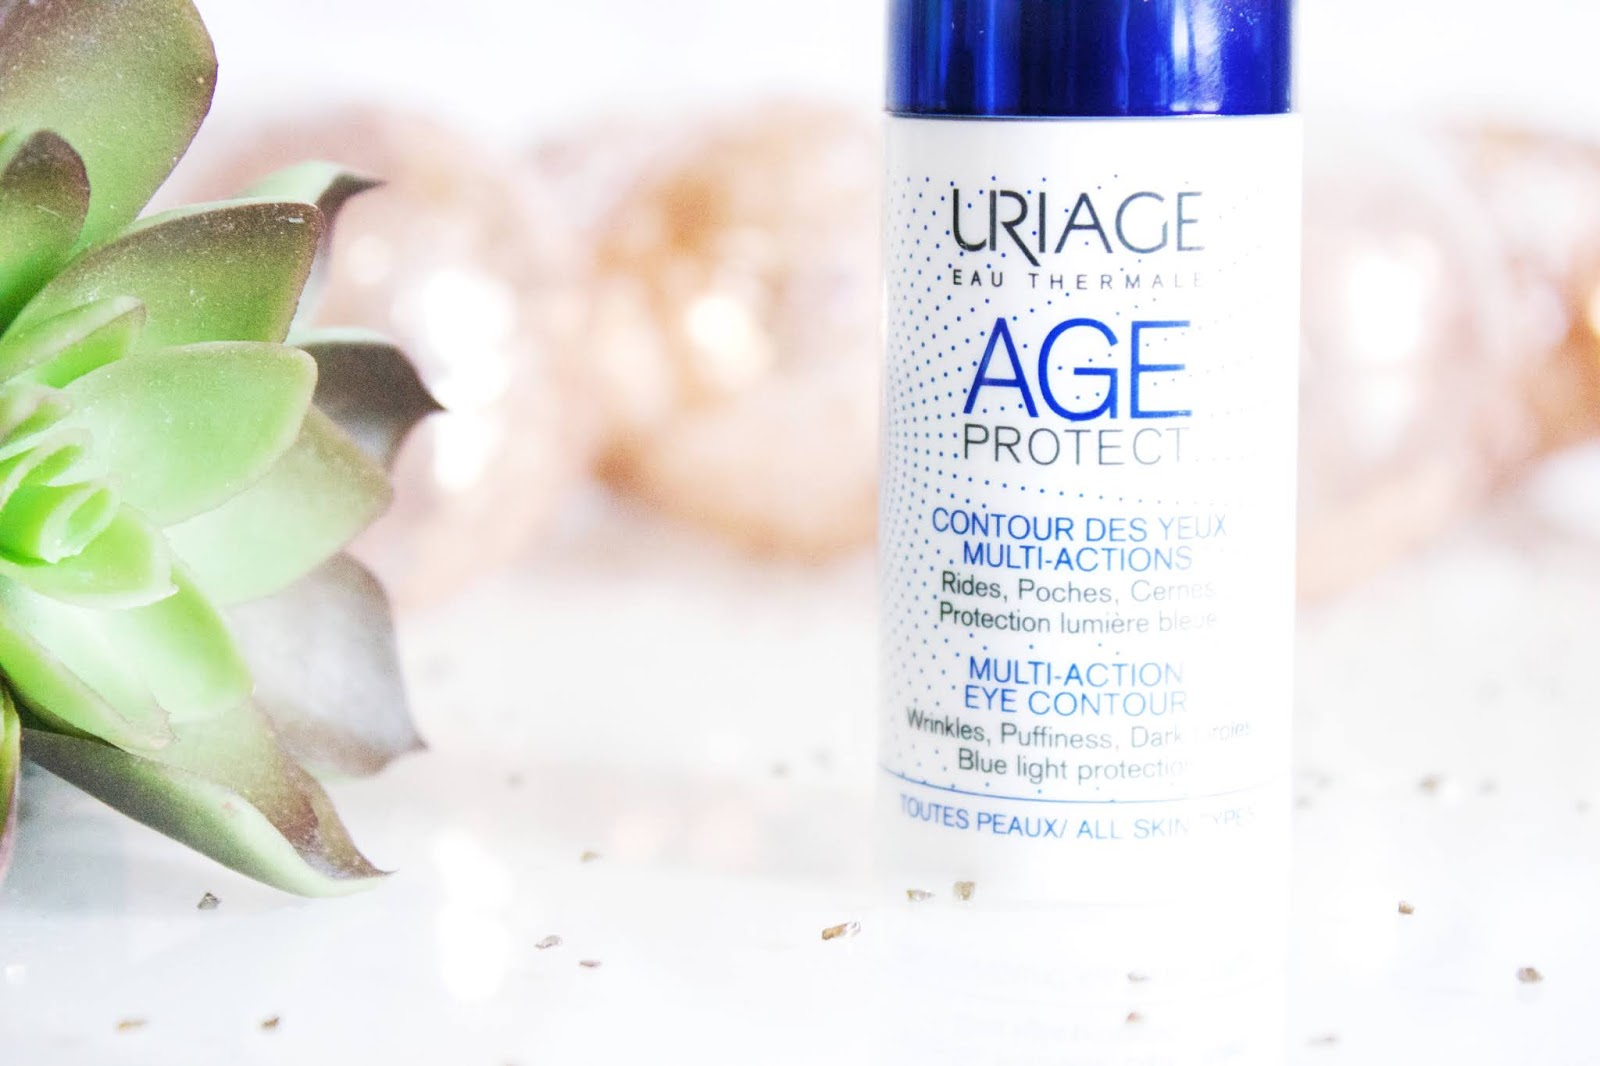 contour-yeux-muti-actions-age-protect-uriage